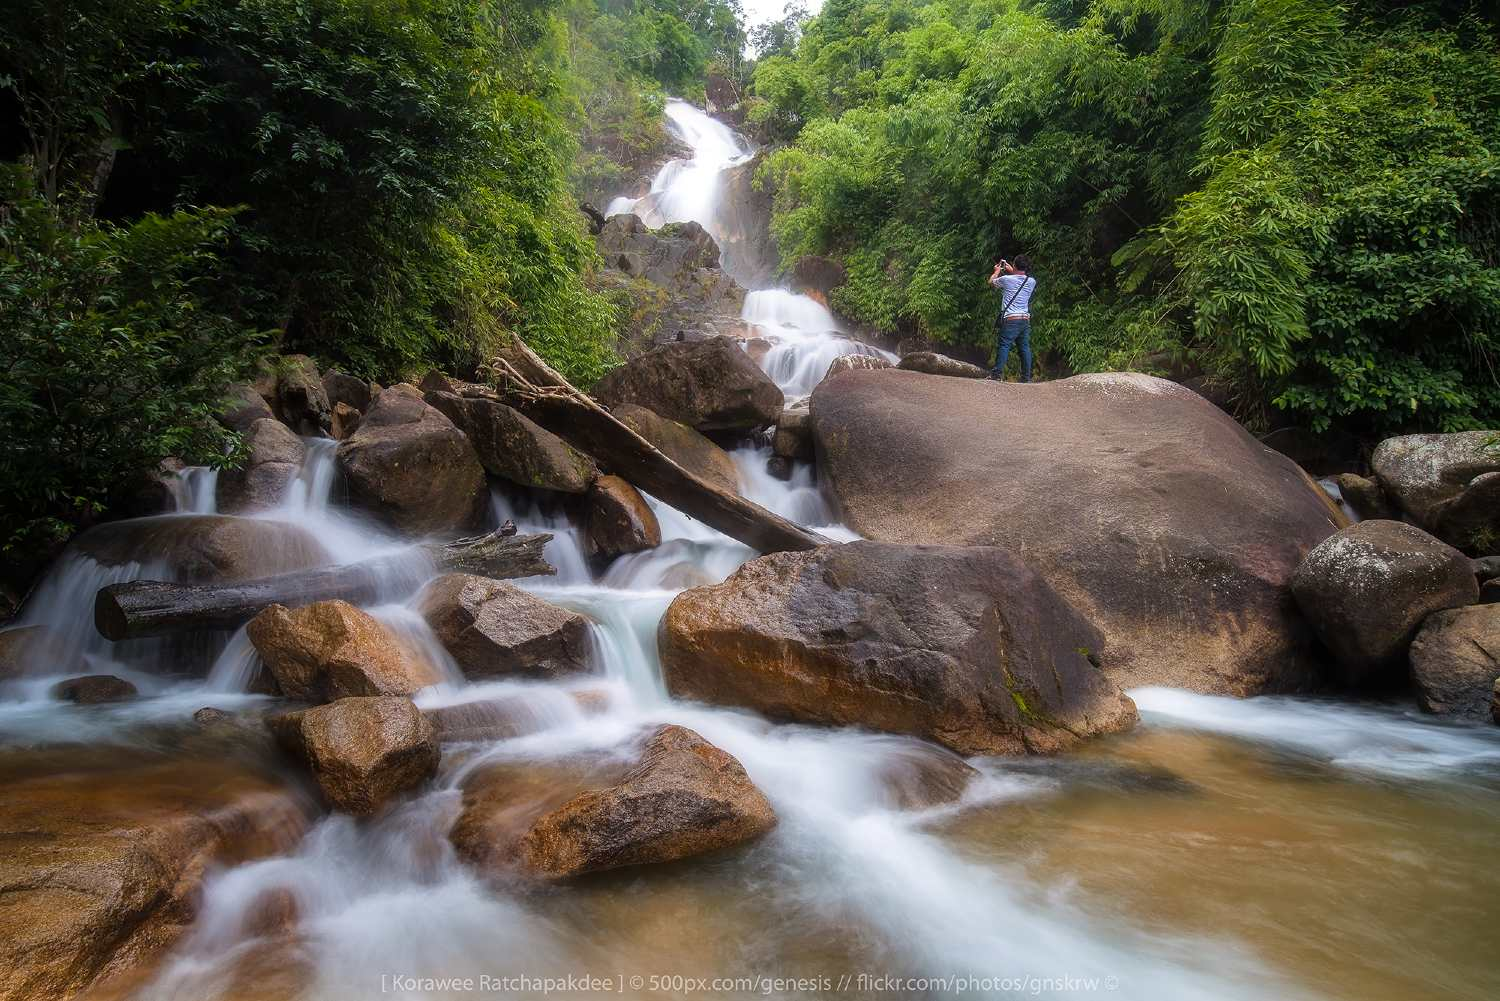 The Krating waterfall, a large waterfall in the Chantaburi province of Thailand